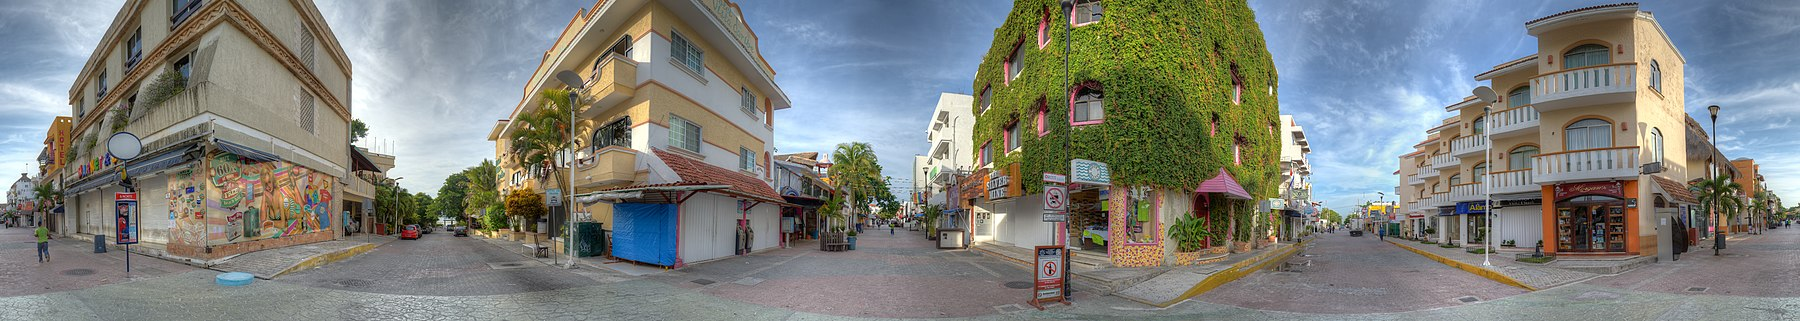 Quinta Avenida at Calle 6 Norte - Playa del Carmen, Mexico - August 15, 2014.jpg